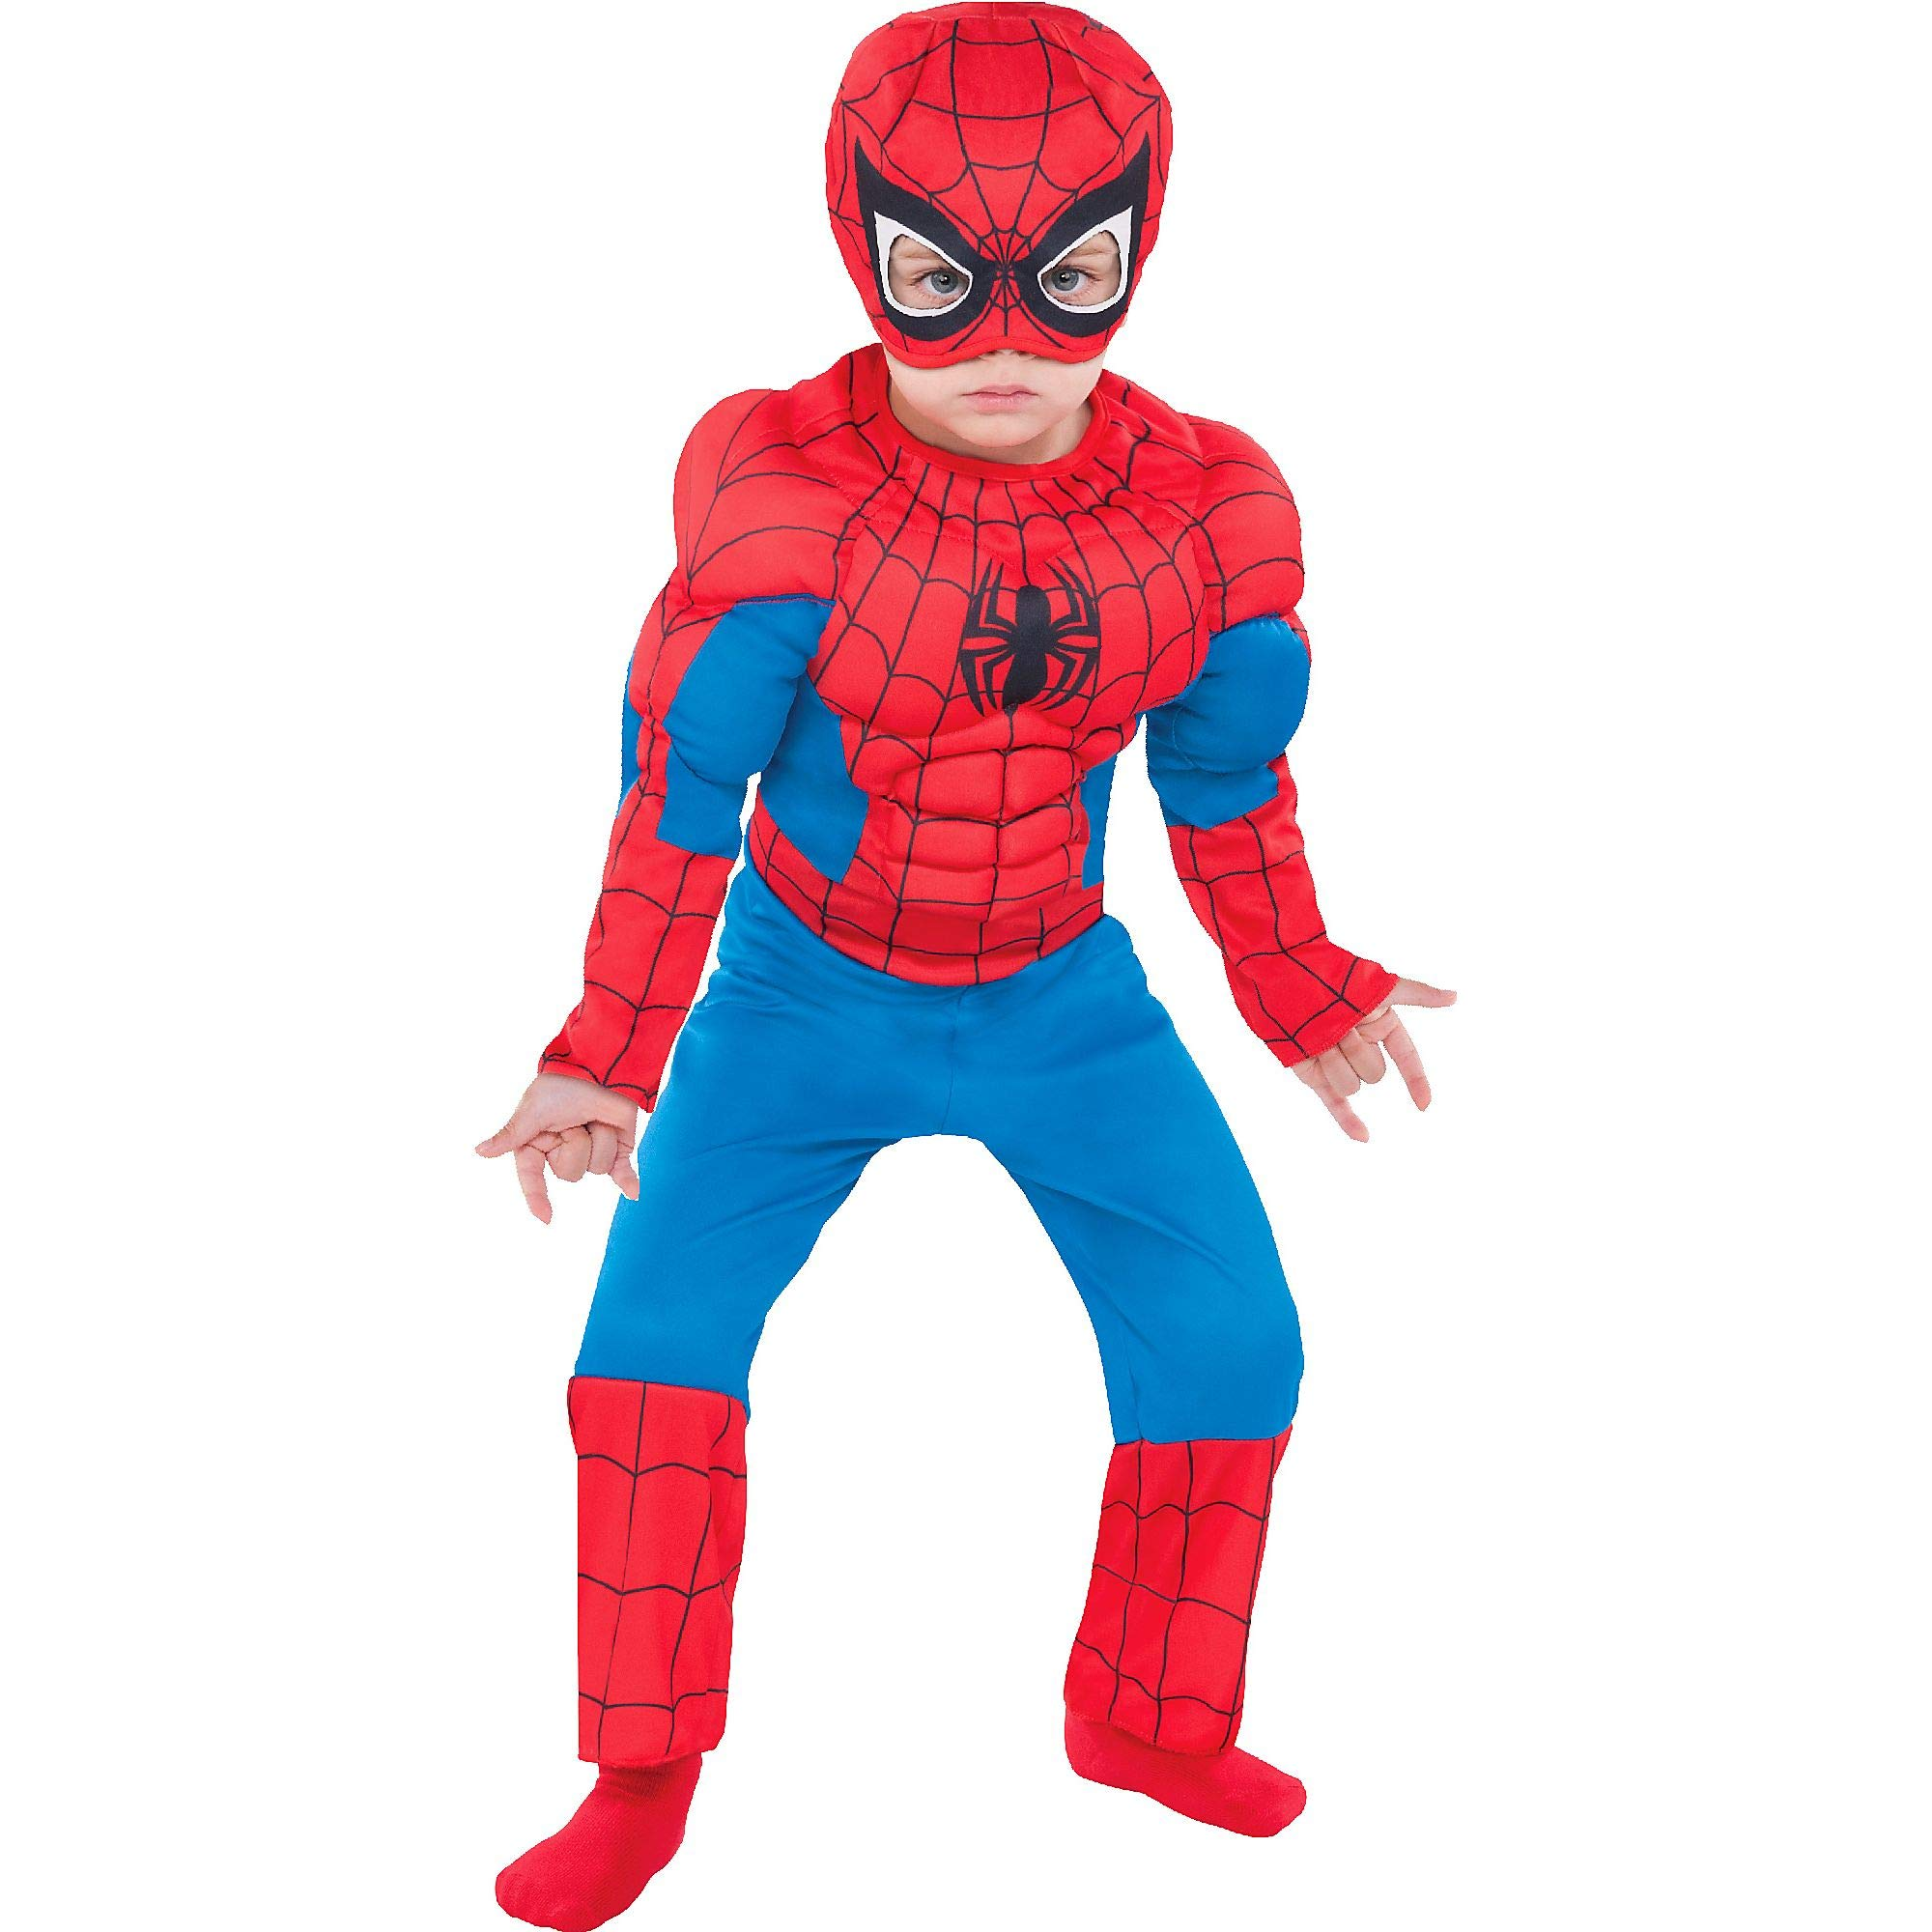 Party City Classic Spider-Man Muscle Halloween Costume for Toddler Boys, 3-4T, Includes Headpiece by Party City (Image #1)